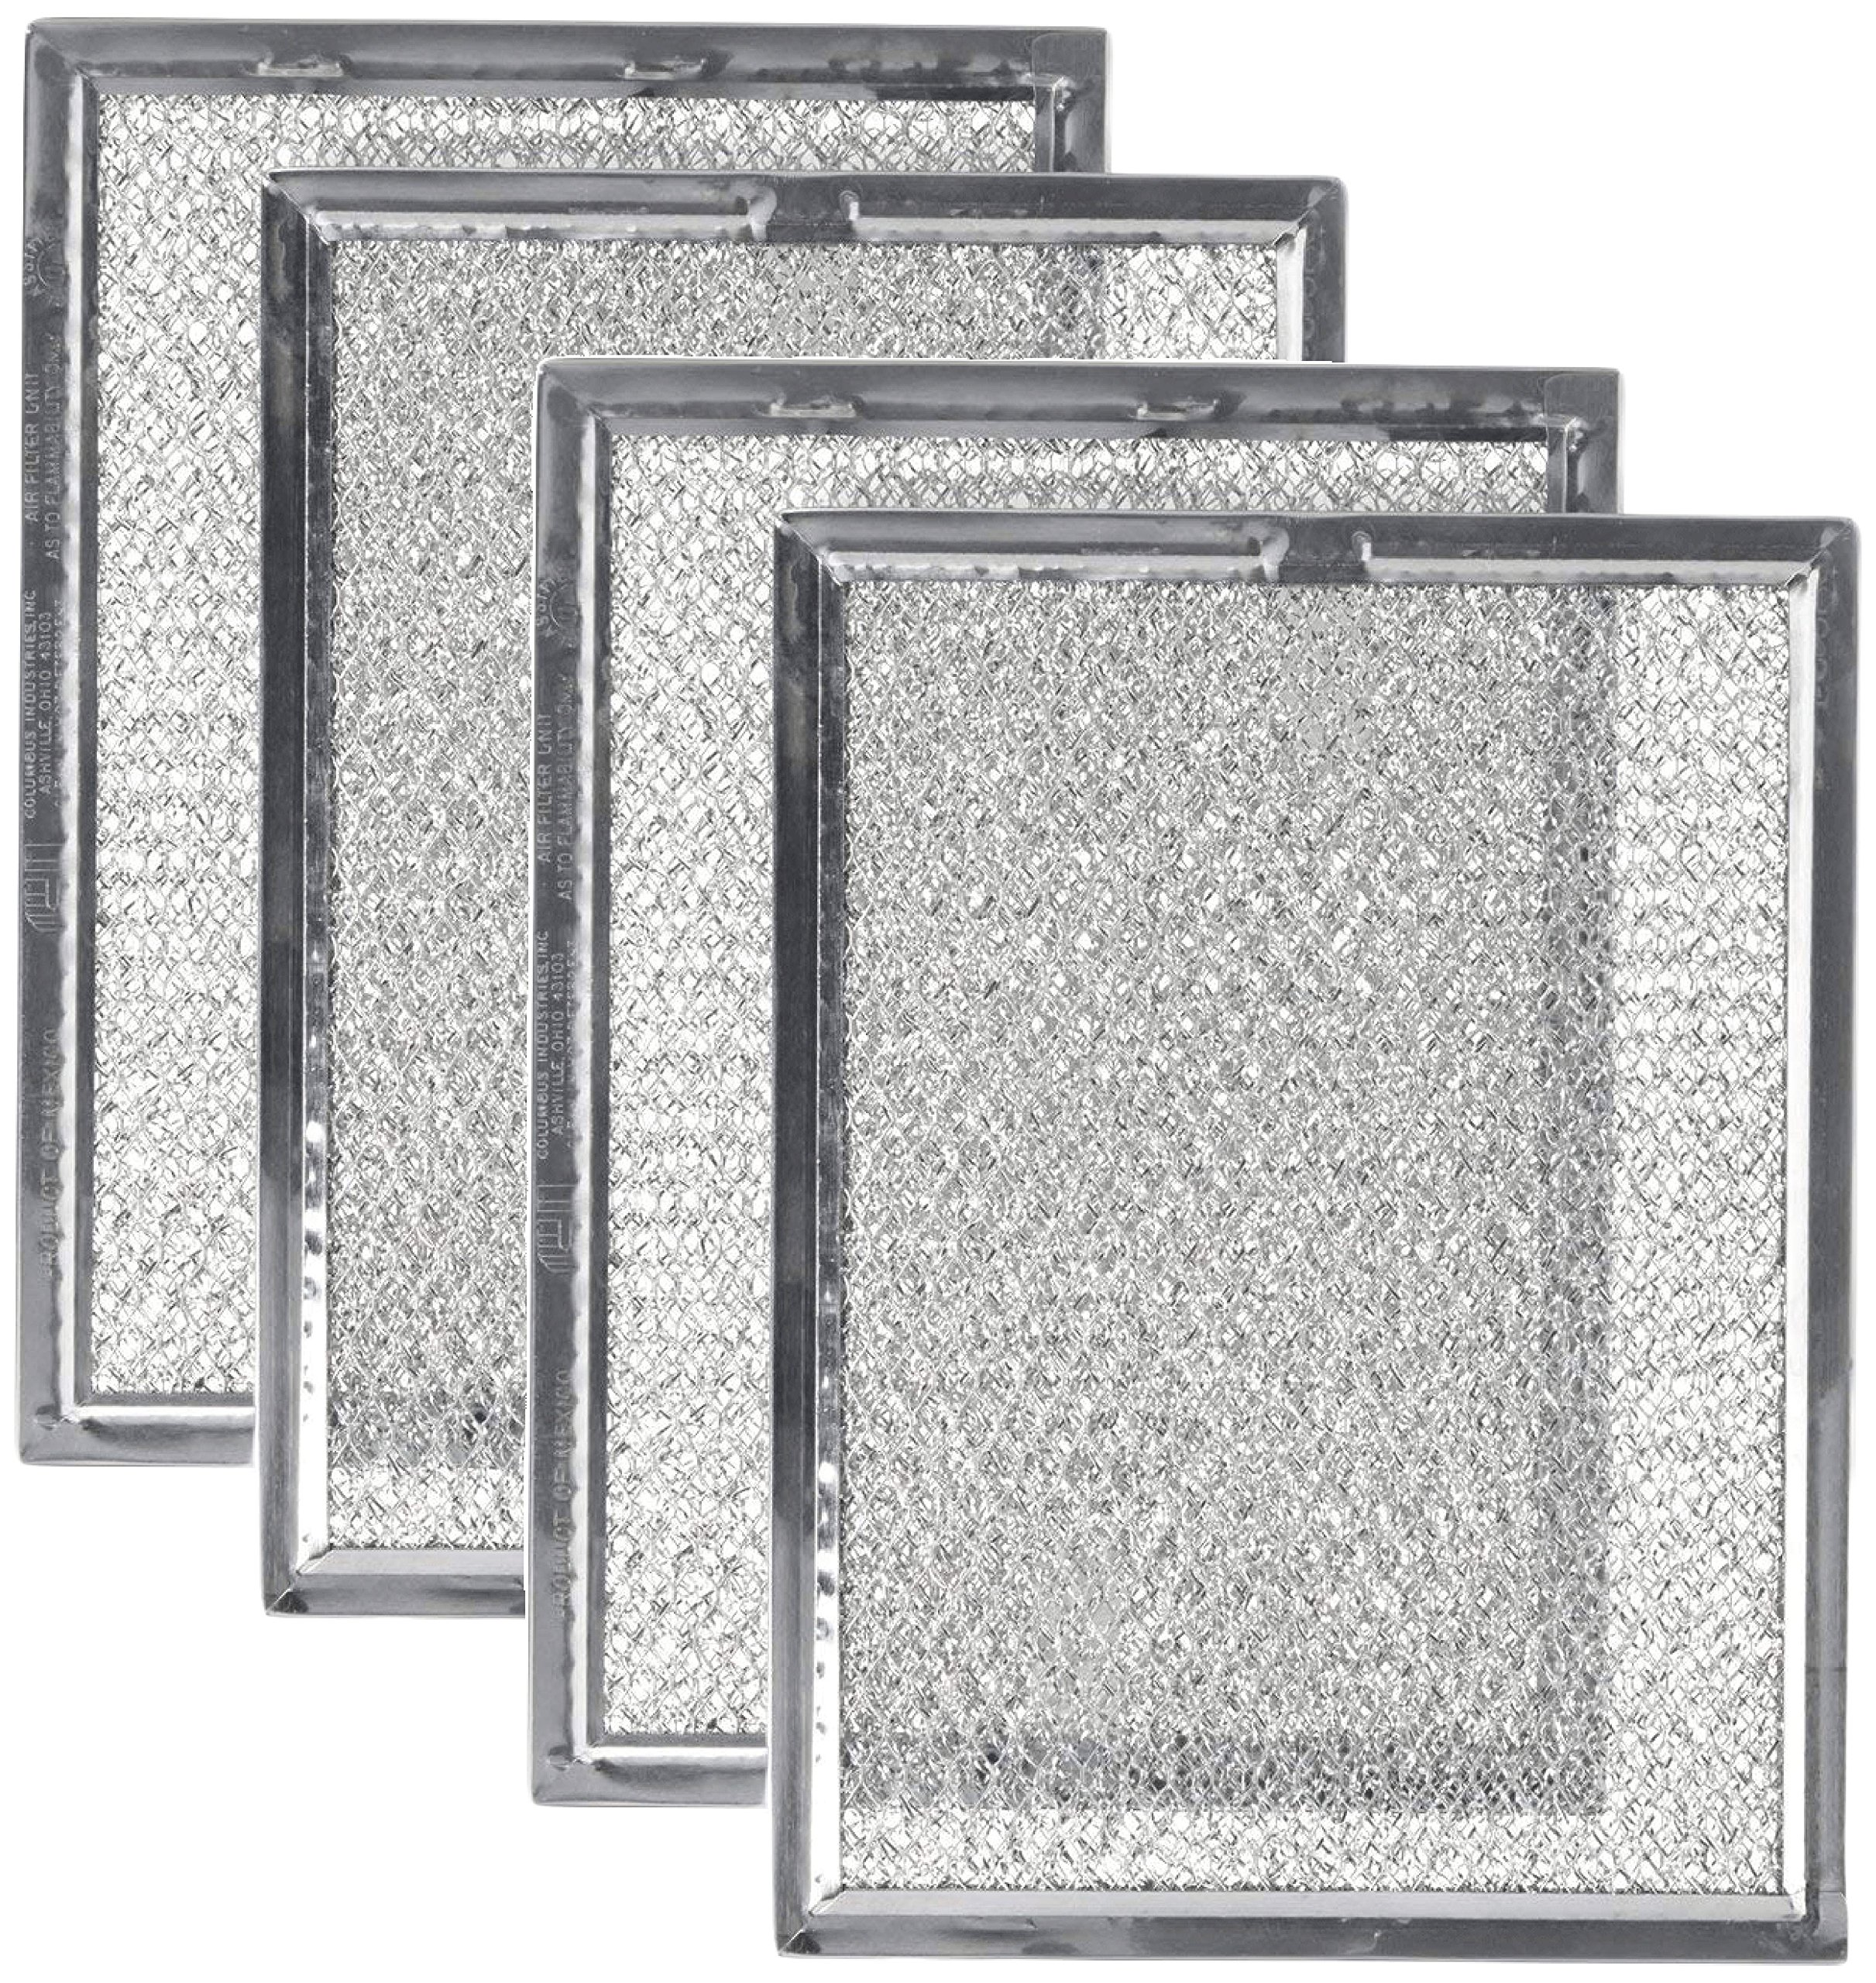 Replacement Microwave Oven Grease Filter For Frigidaire 5303319568, 4 Filters